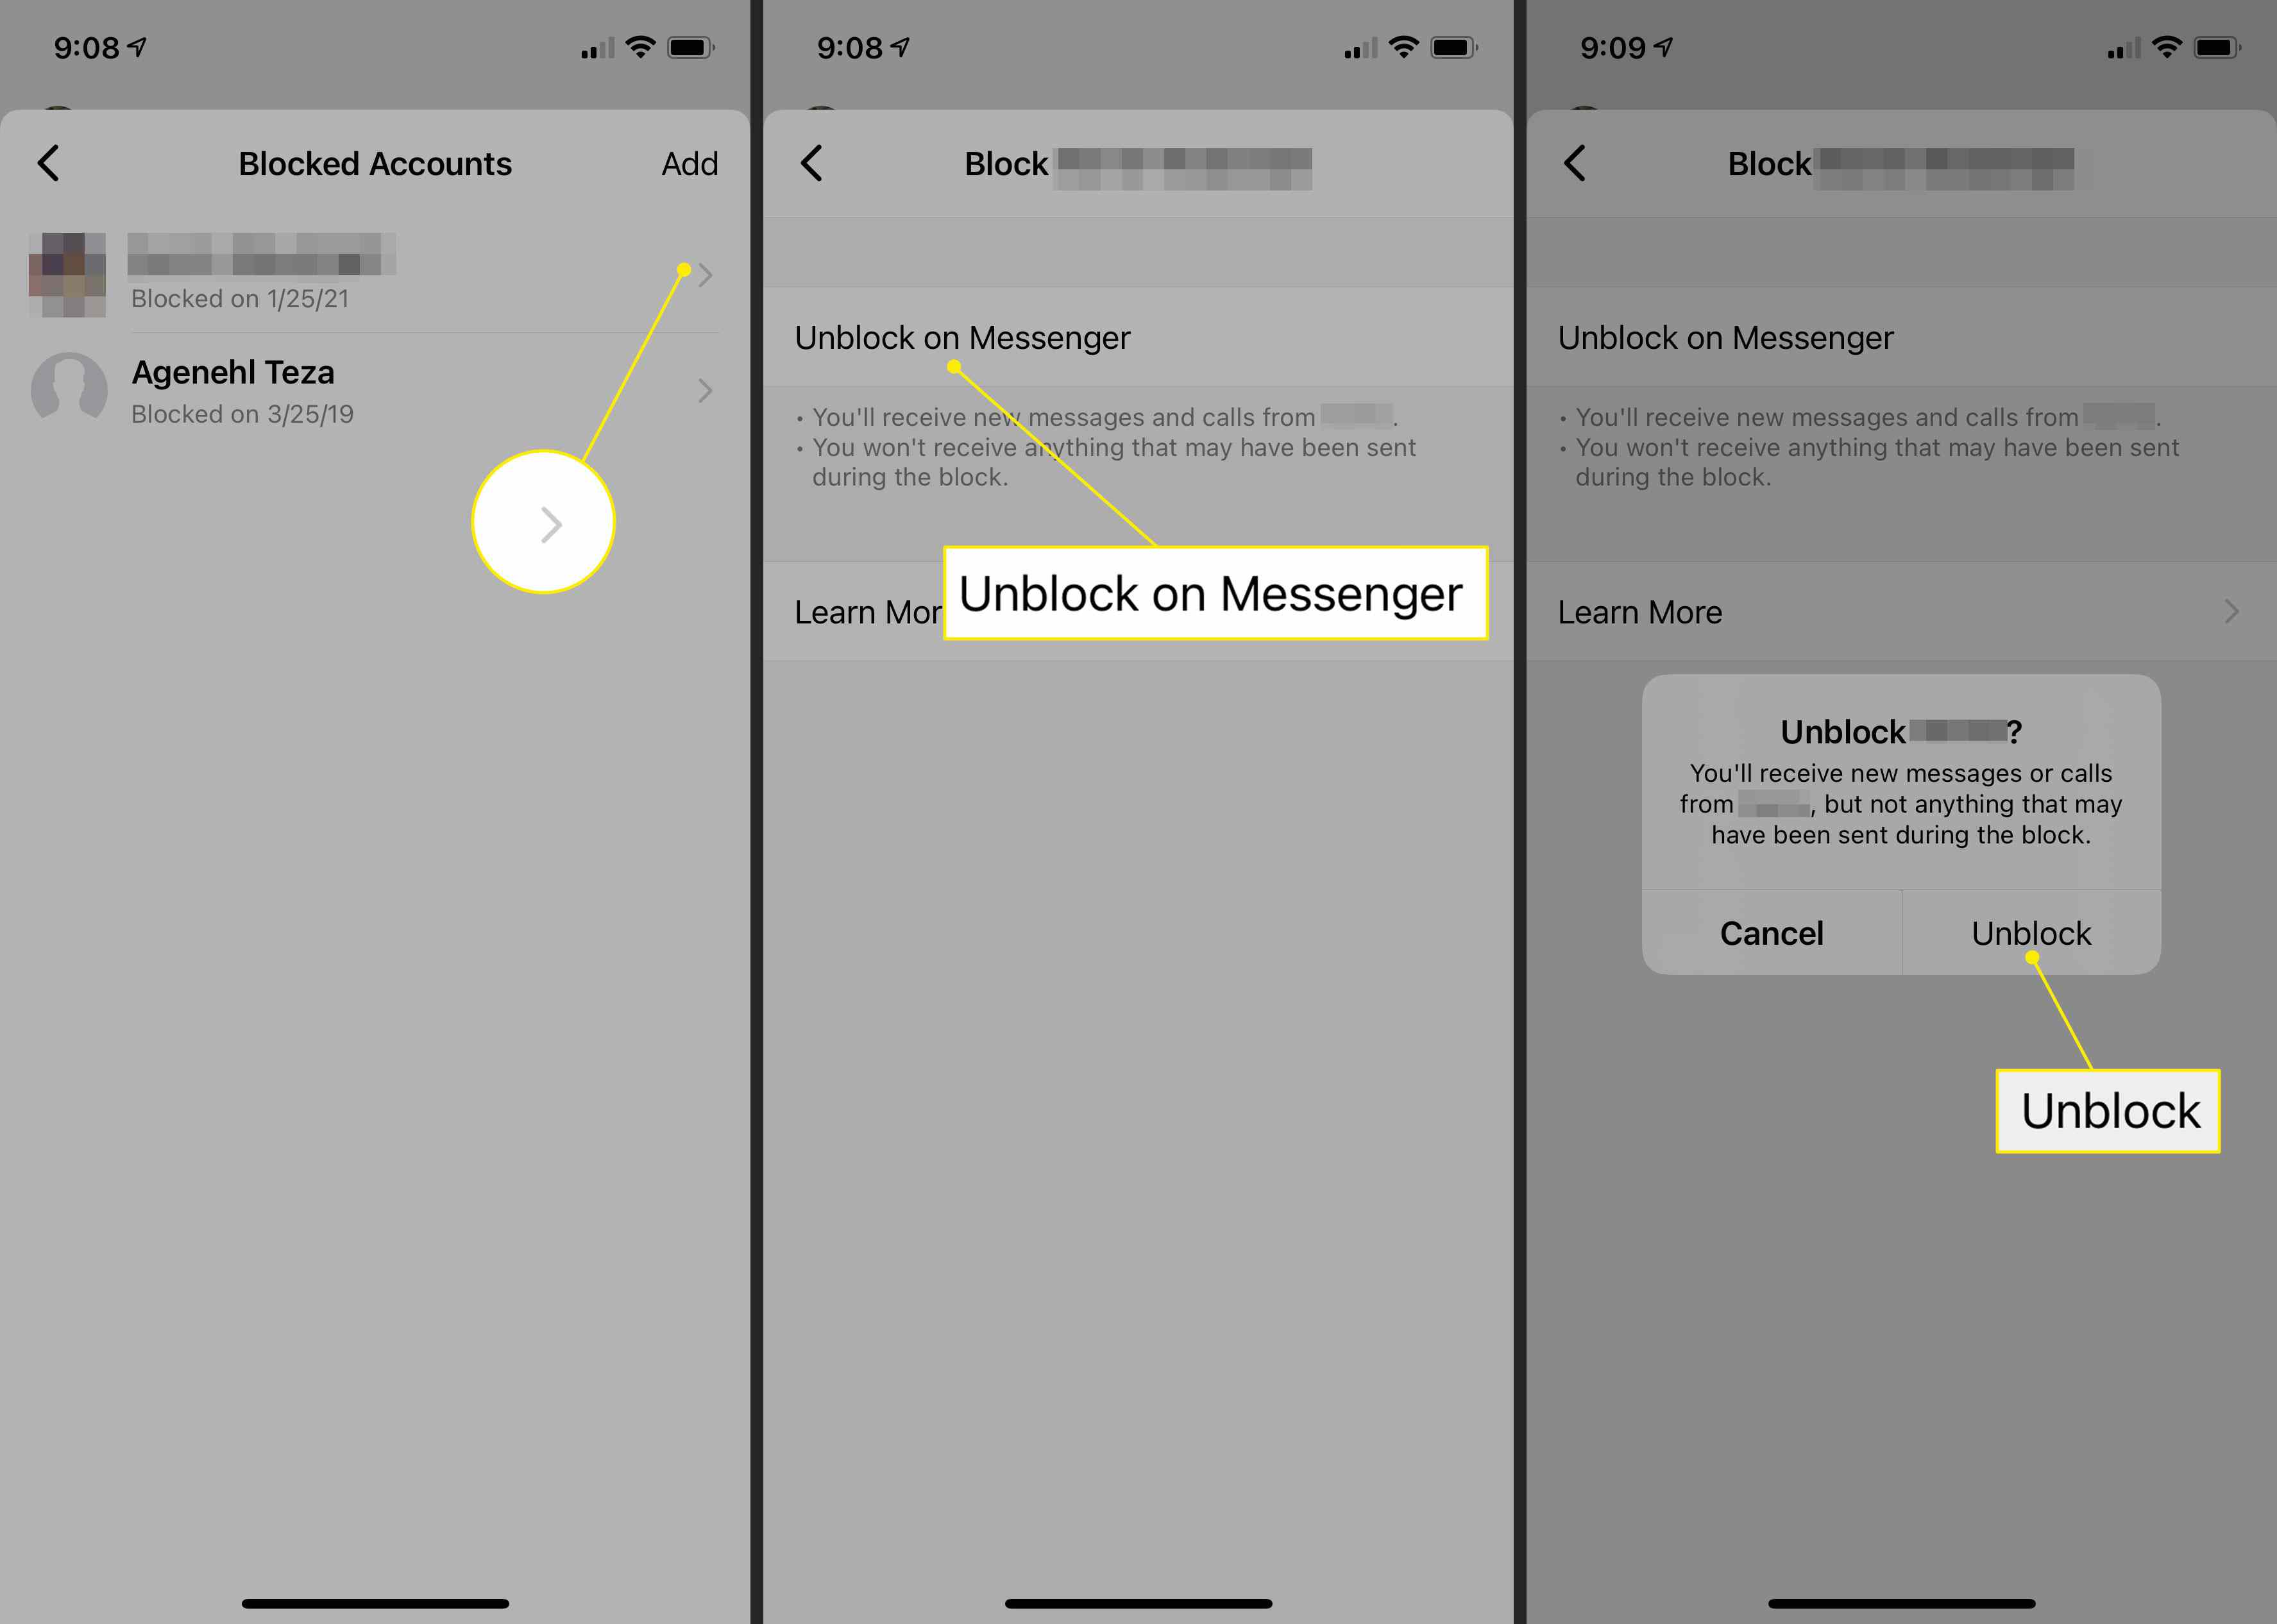 Unblocking a contact in Facebook Messenger